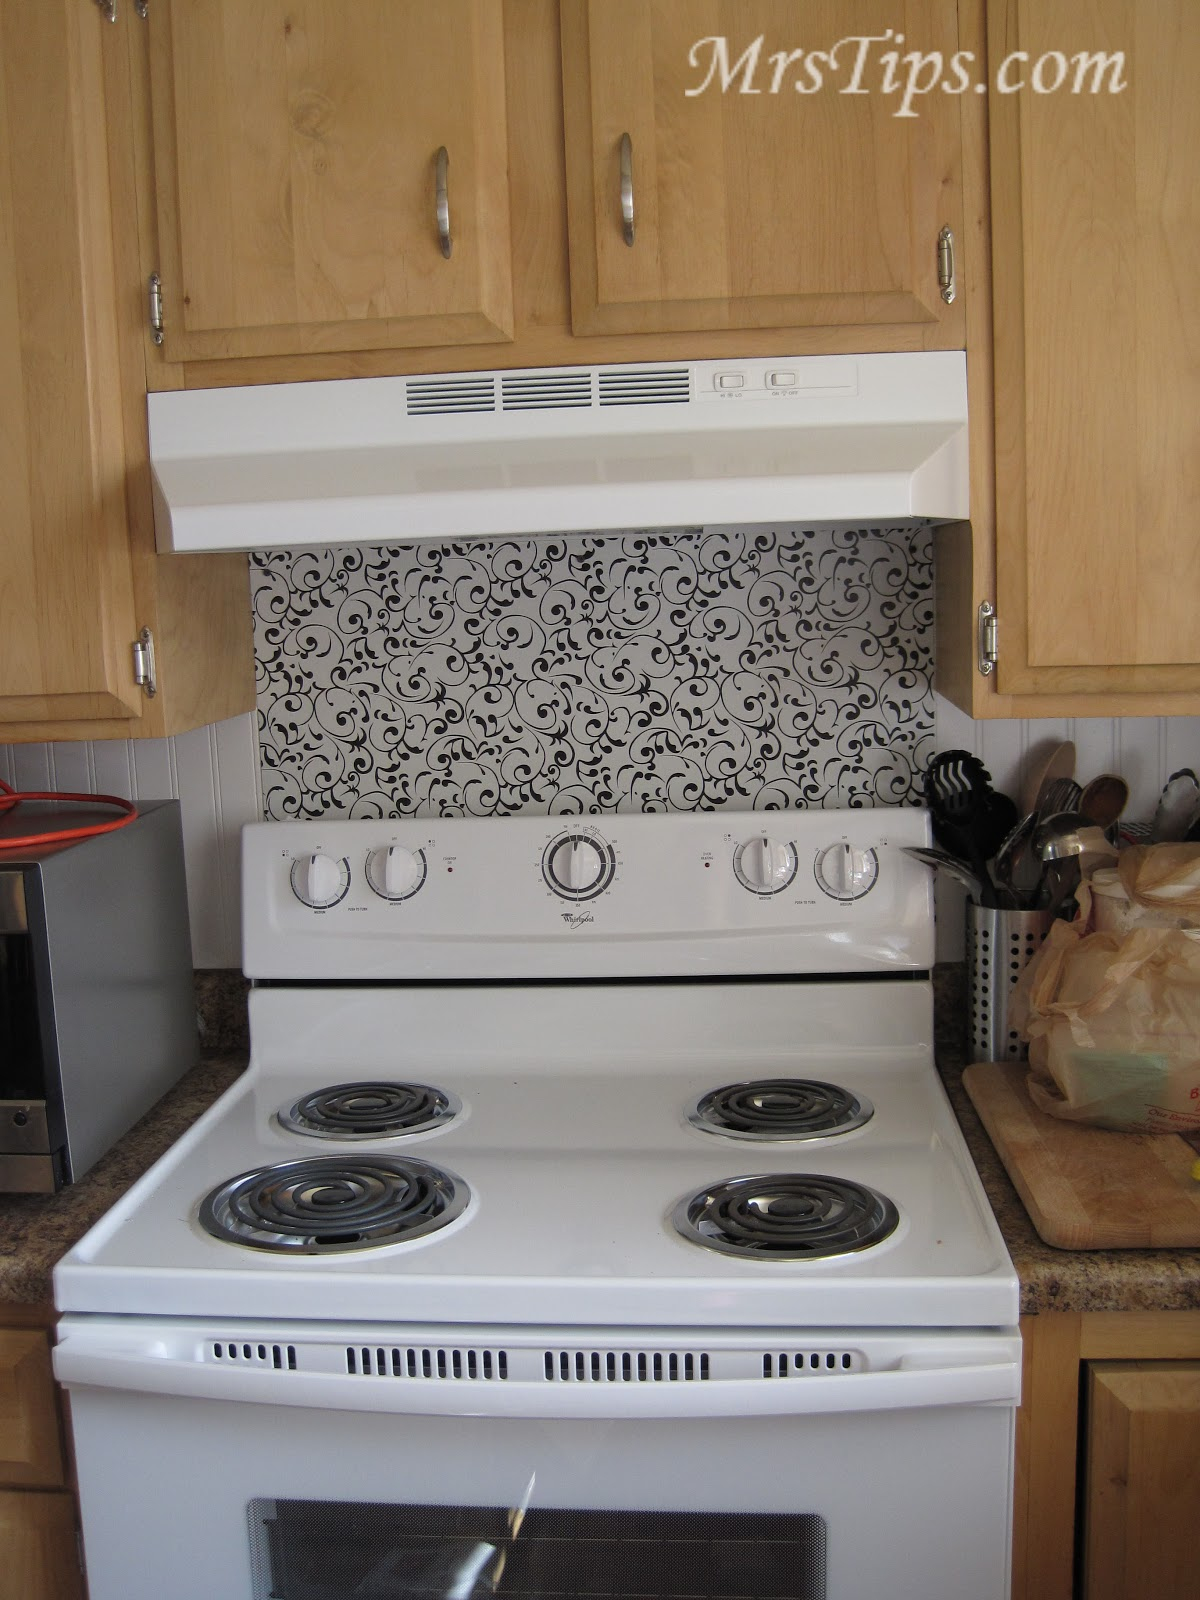 Mrs Tips 10 Or Less Backsplash For Your Stovetop